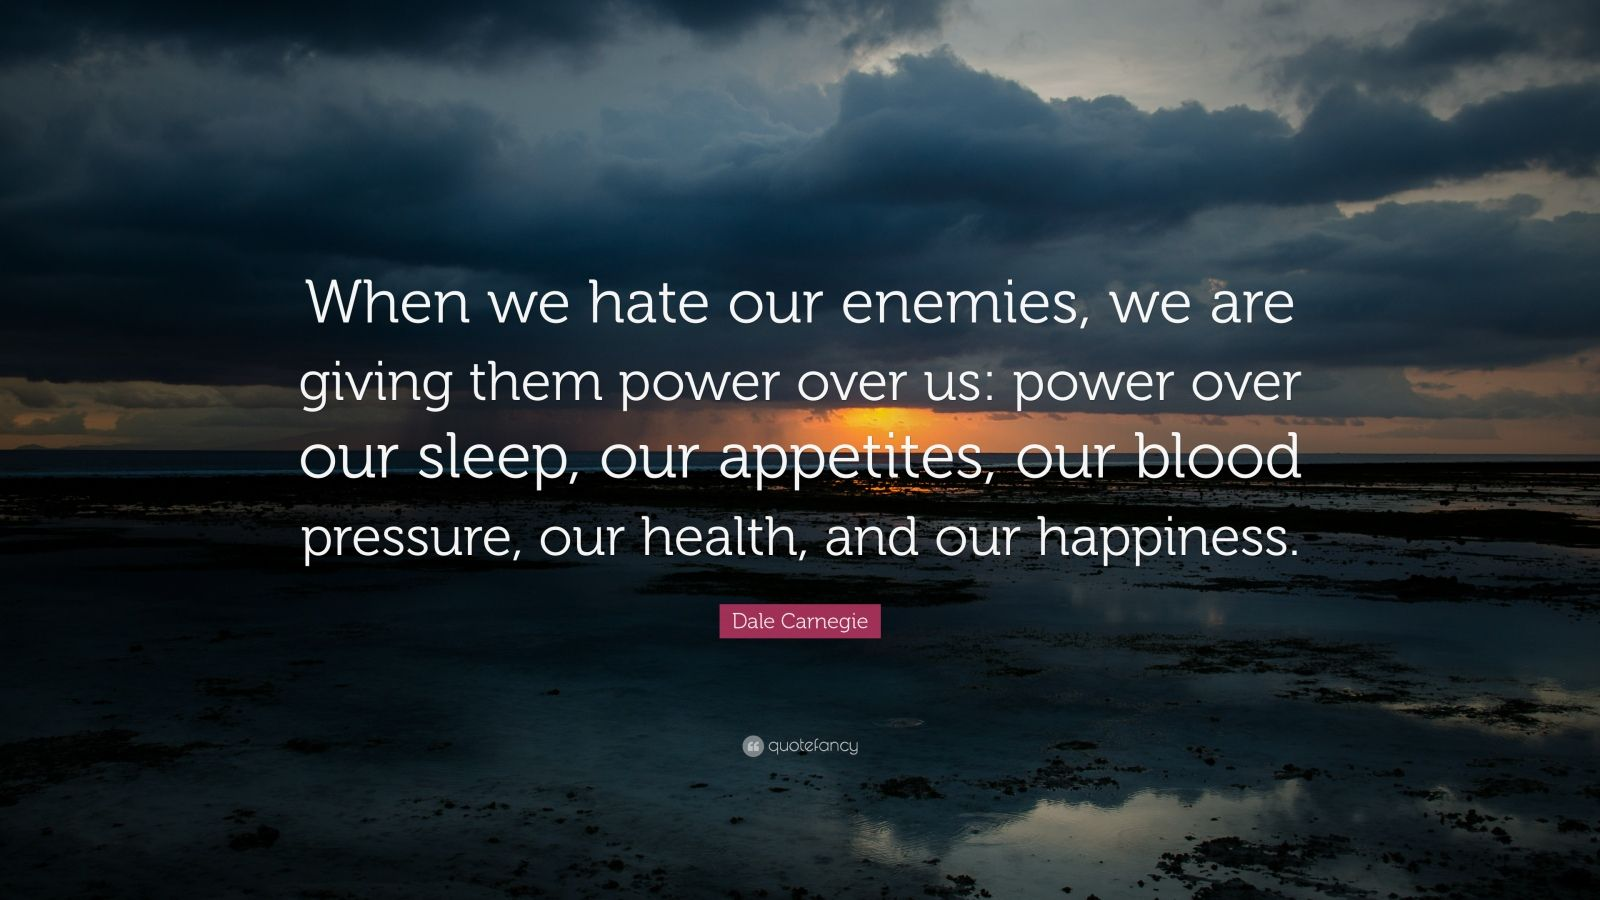 """Dale Carnegie Quote: """"When we hate our enemies, we are giving them power over us: power over our sleep, our appetites, our blood pressure, our health, and our happiness."""""""